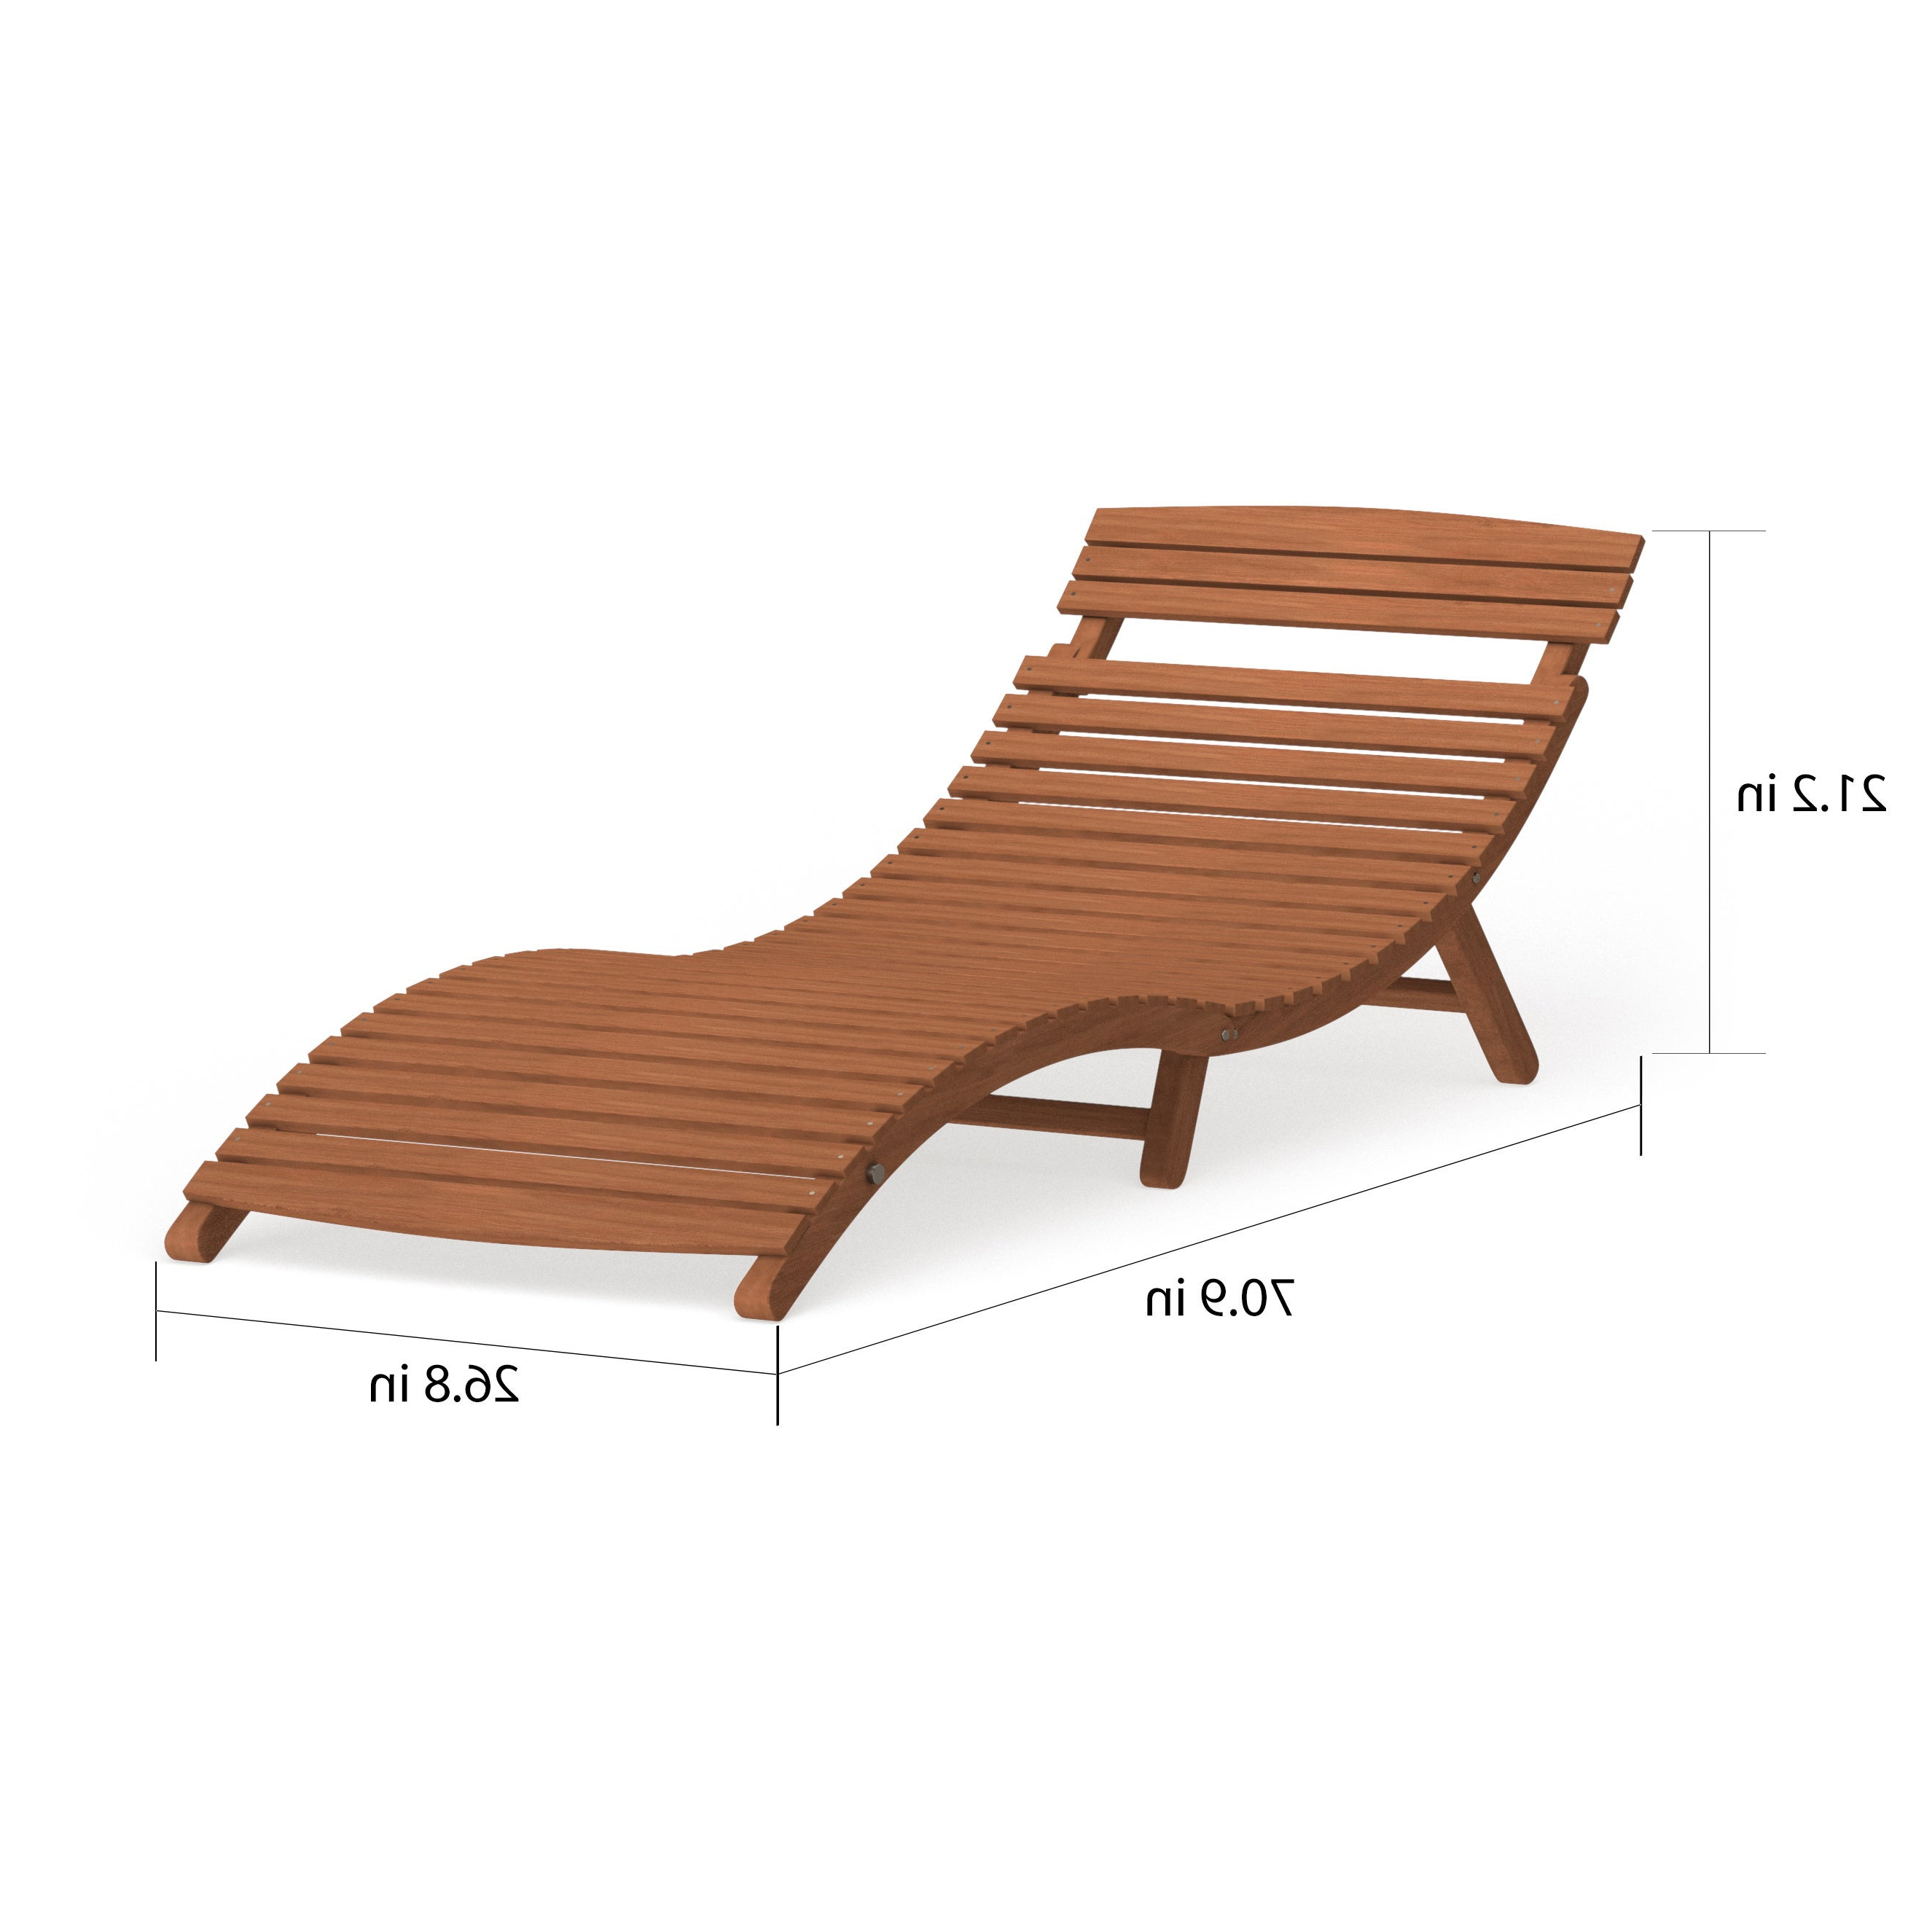 Havenside Home Shi Shi Curved Folding Chaise Lounger Regarding Most Popular Curved Folding Chaise Loungers (View 11 of 25)